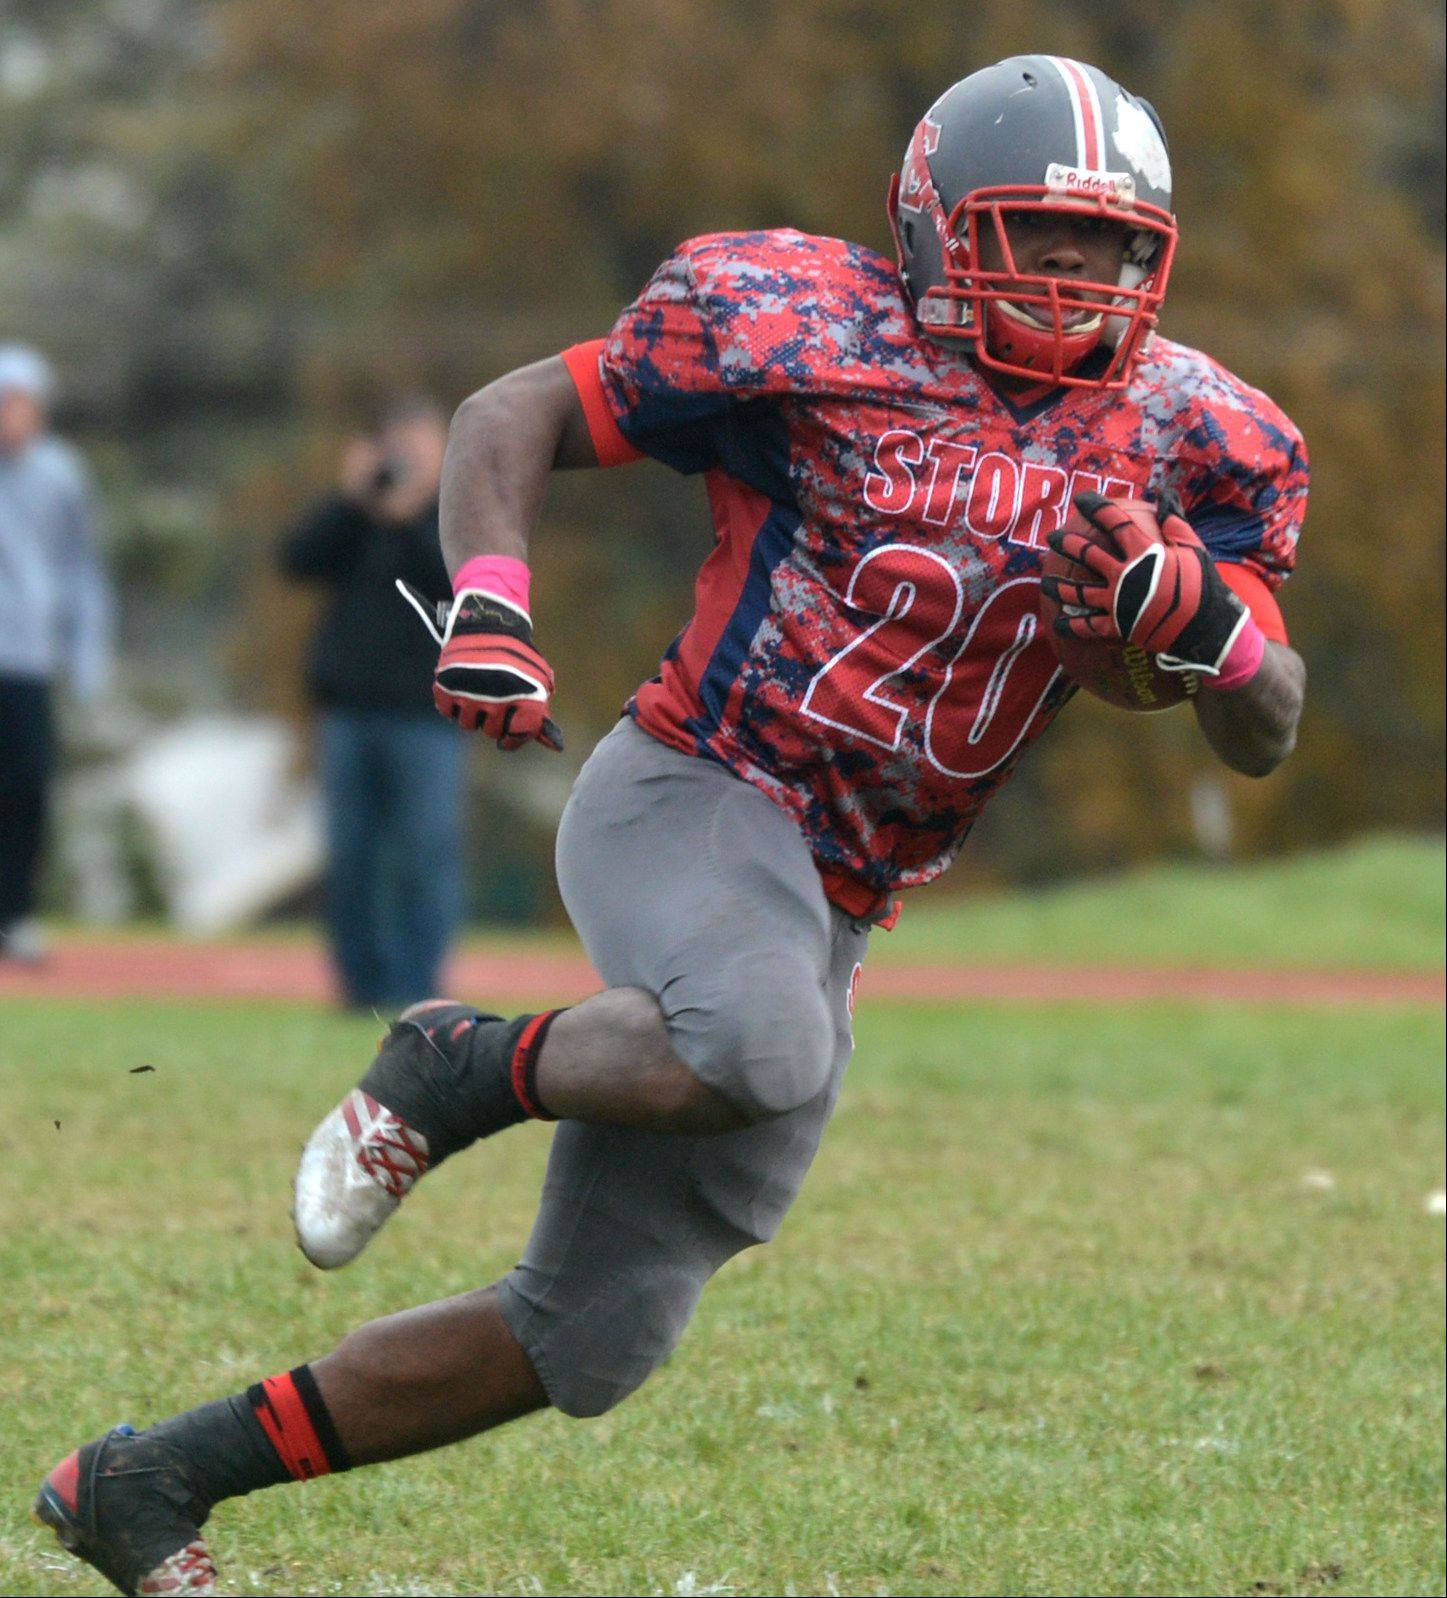 South Elgin's Shawn Griffin runs the ball against St. Charles North at South Elgin on Saturday.